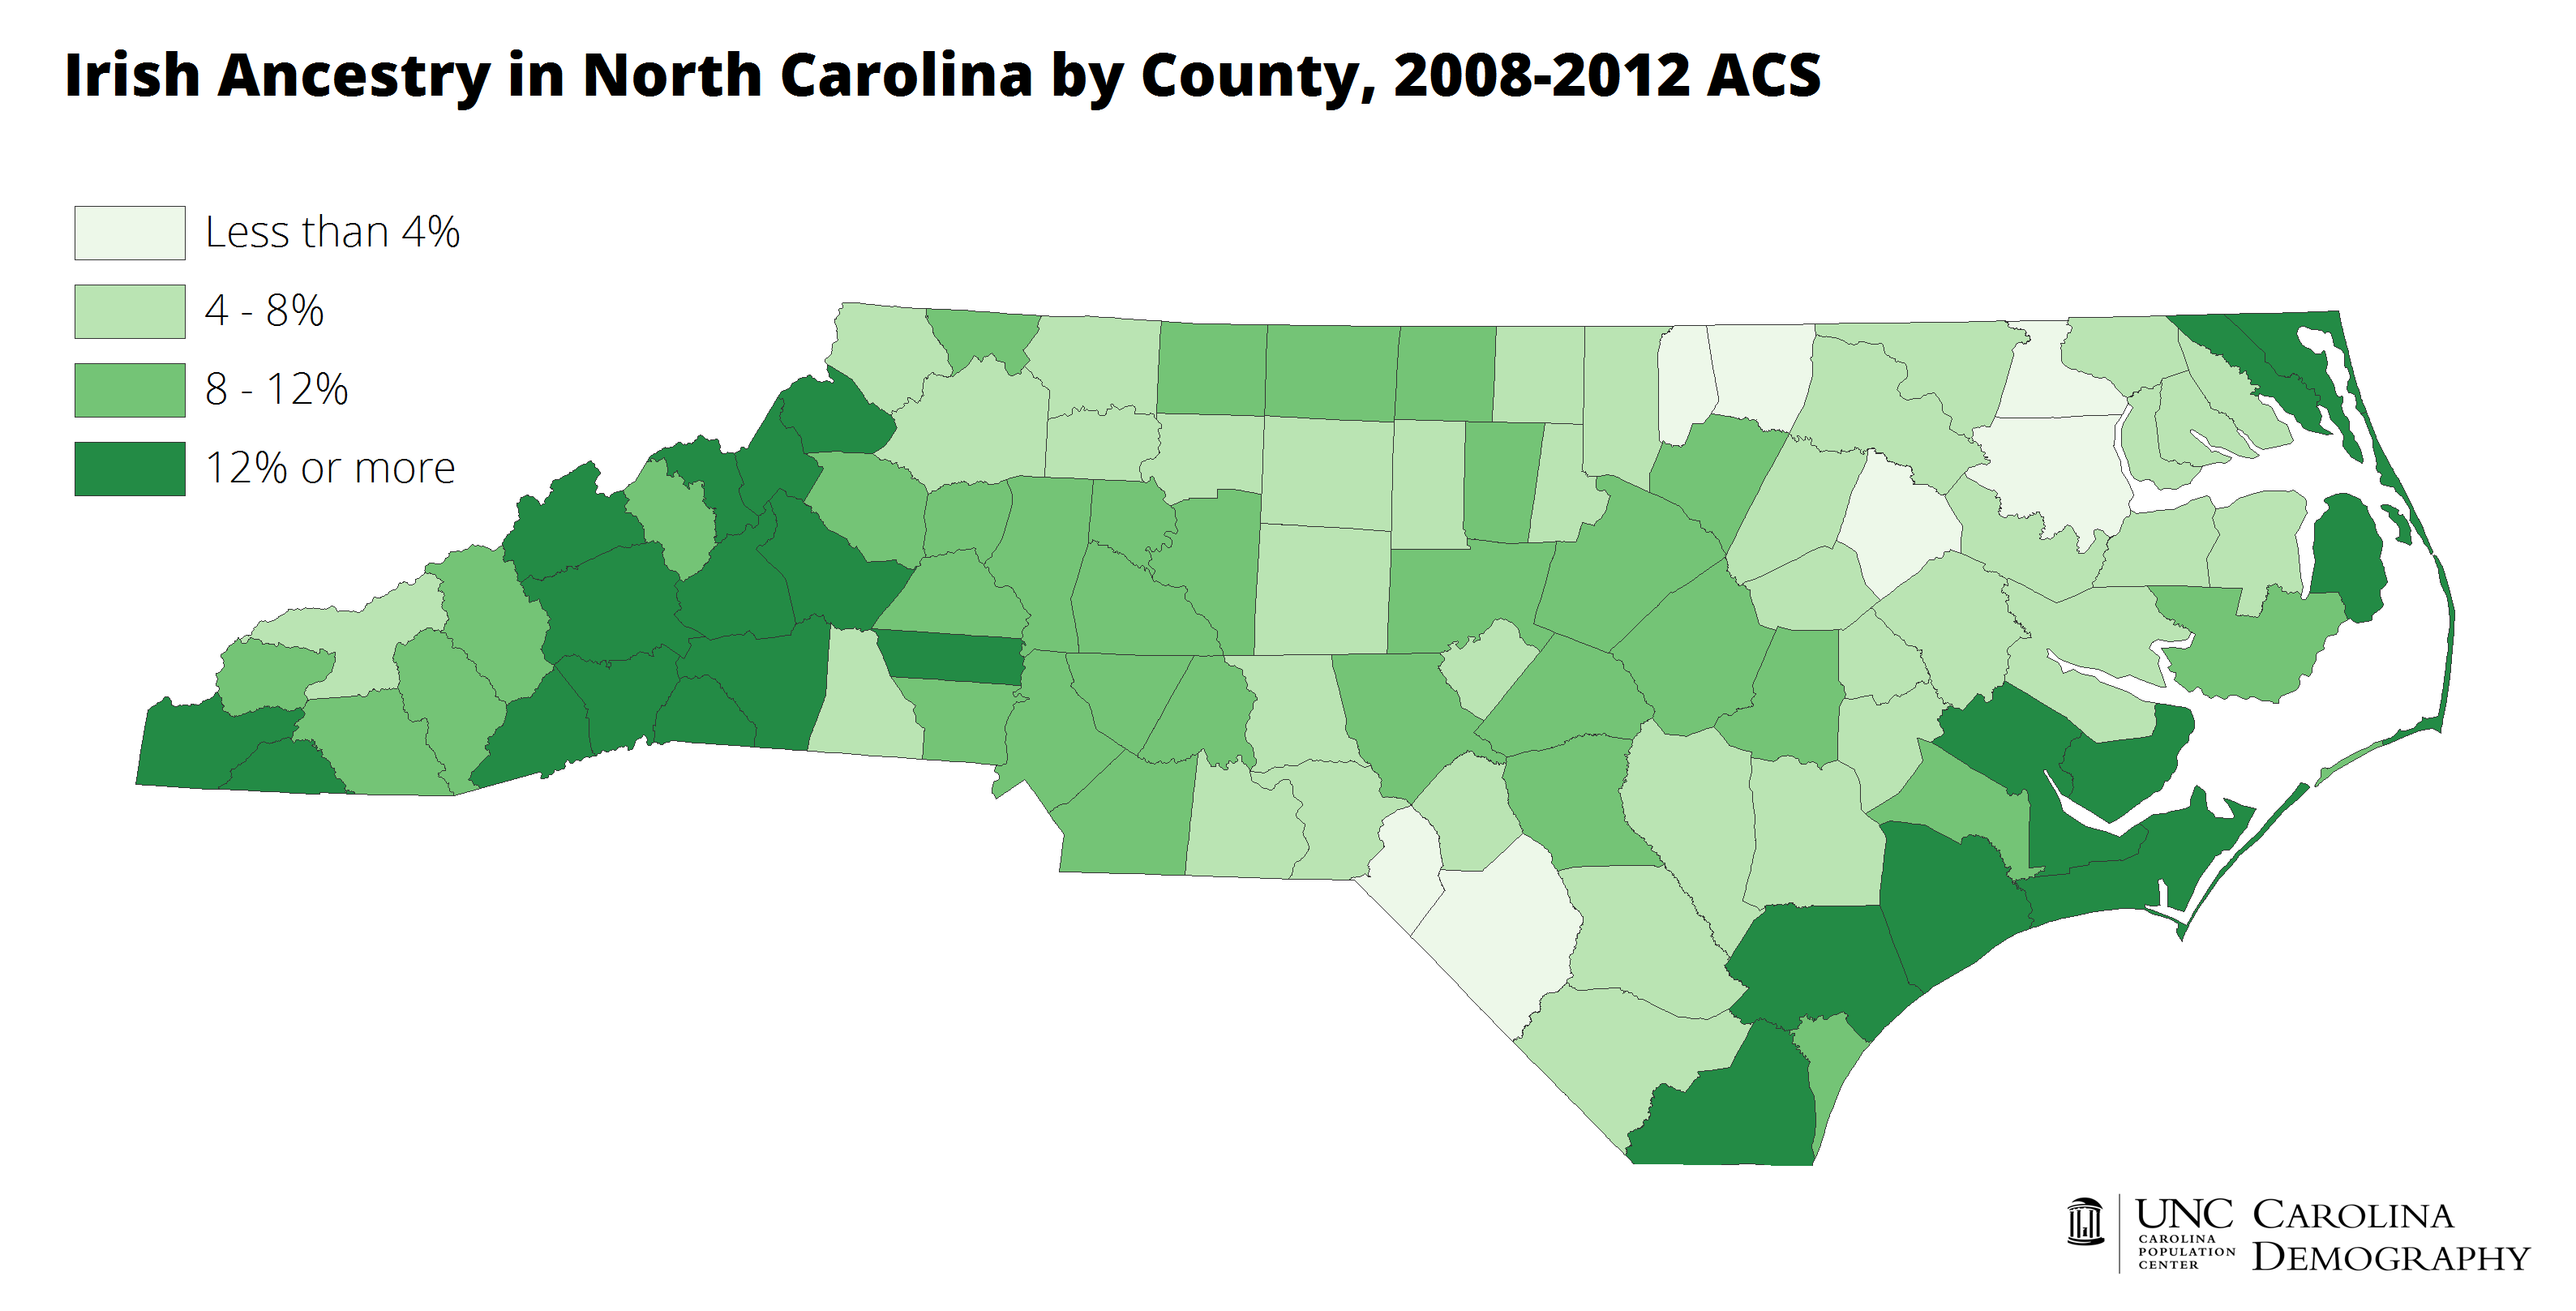 Irish Ancestry by County, NC 2008-2012 ACS